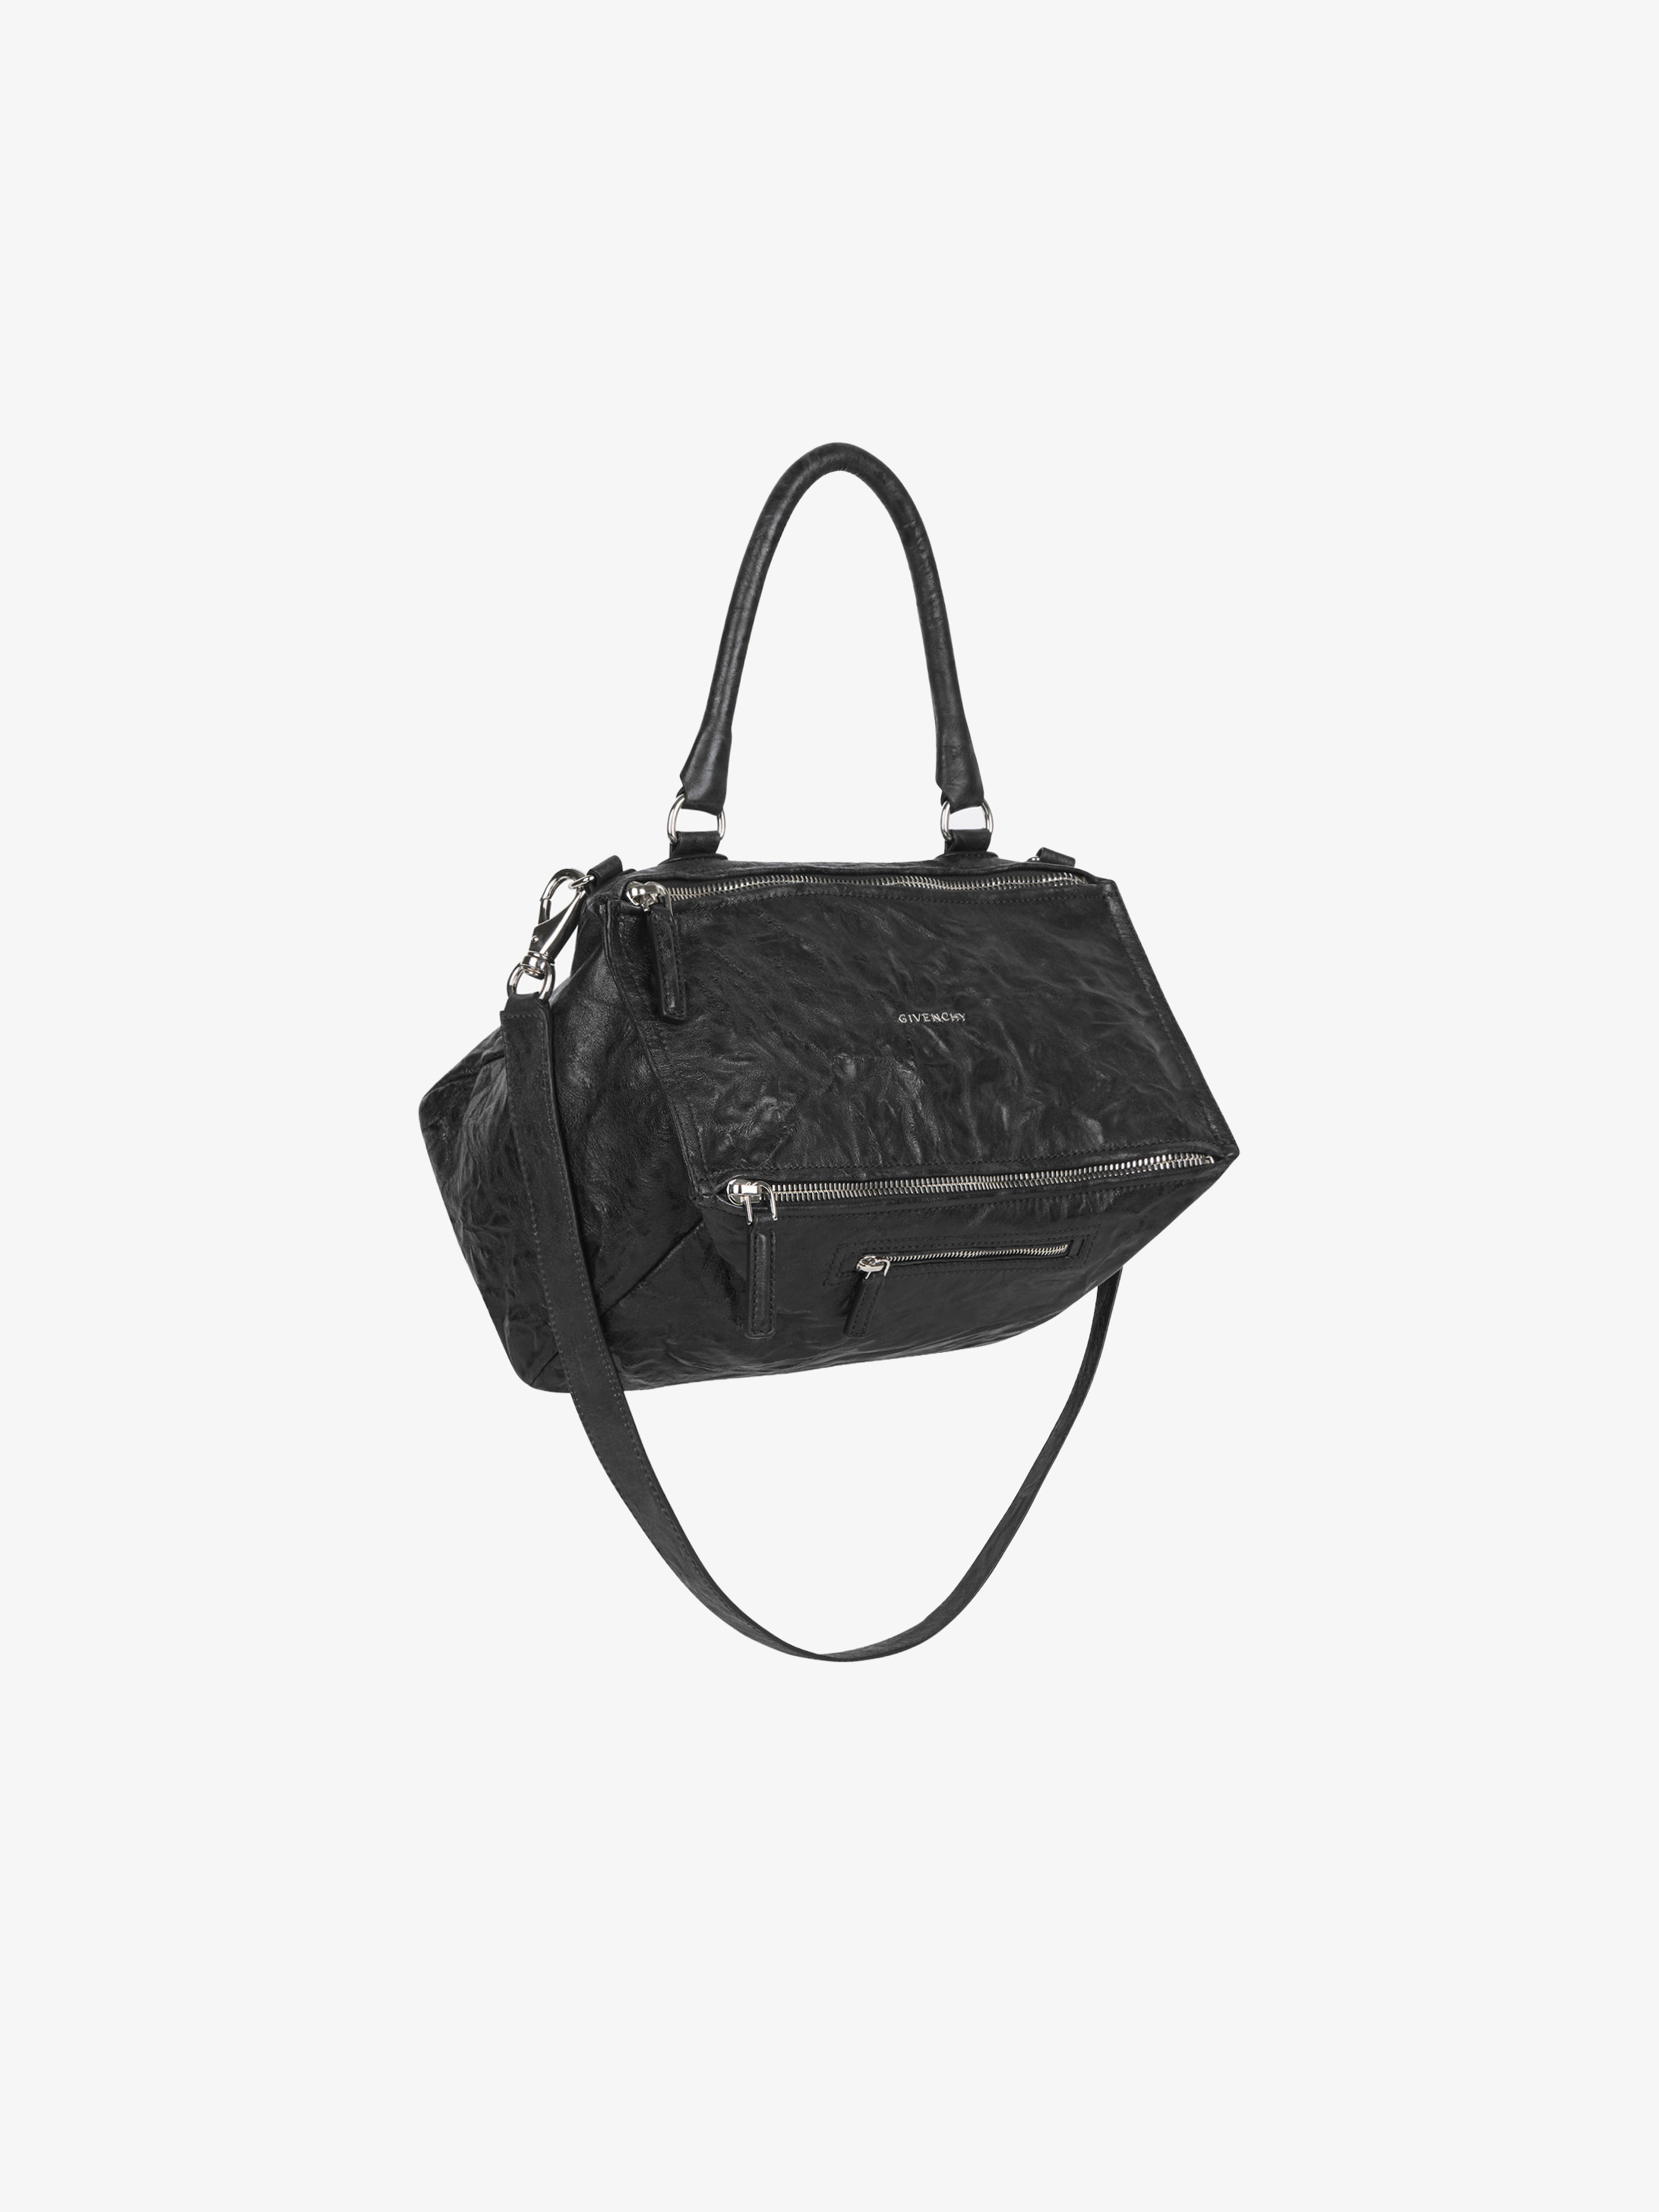 20354c6a39c5 Givenchy Medium Pandora bag in aged leather